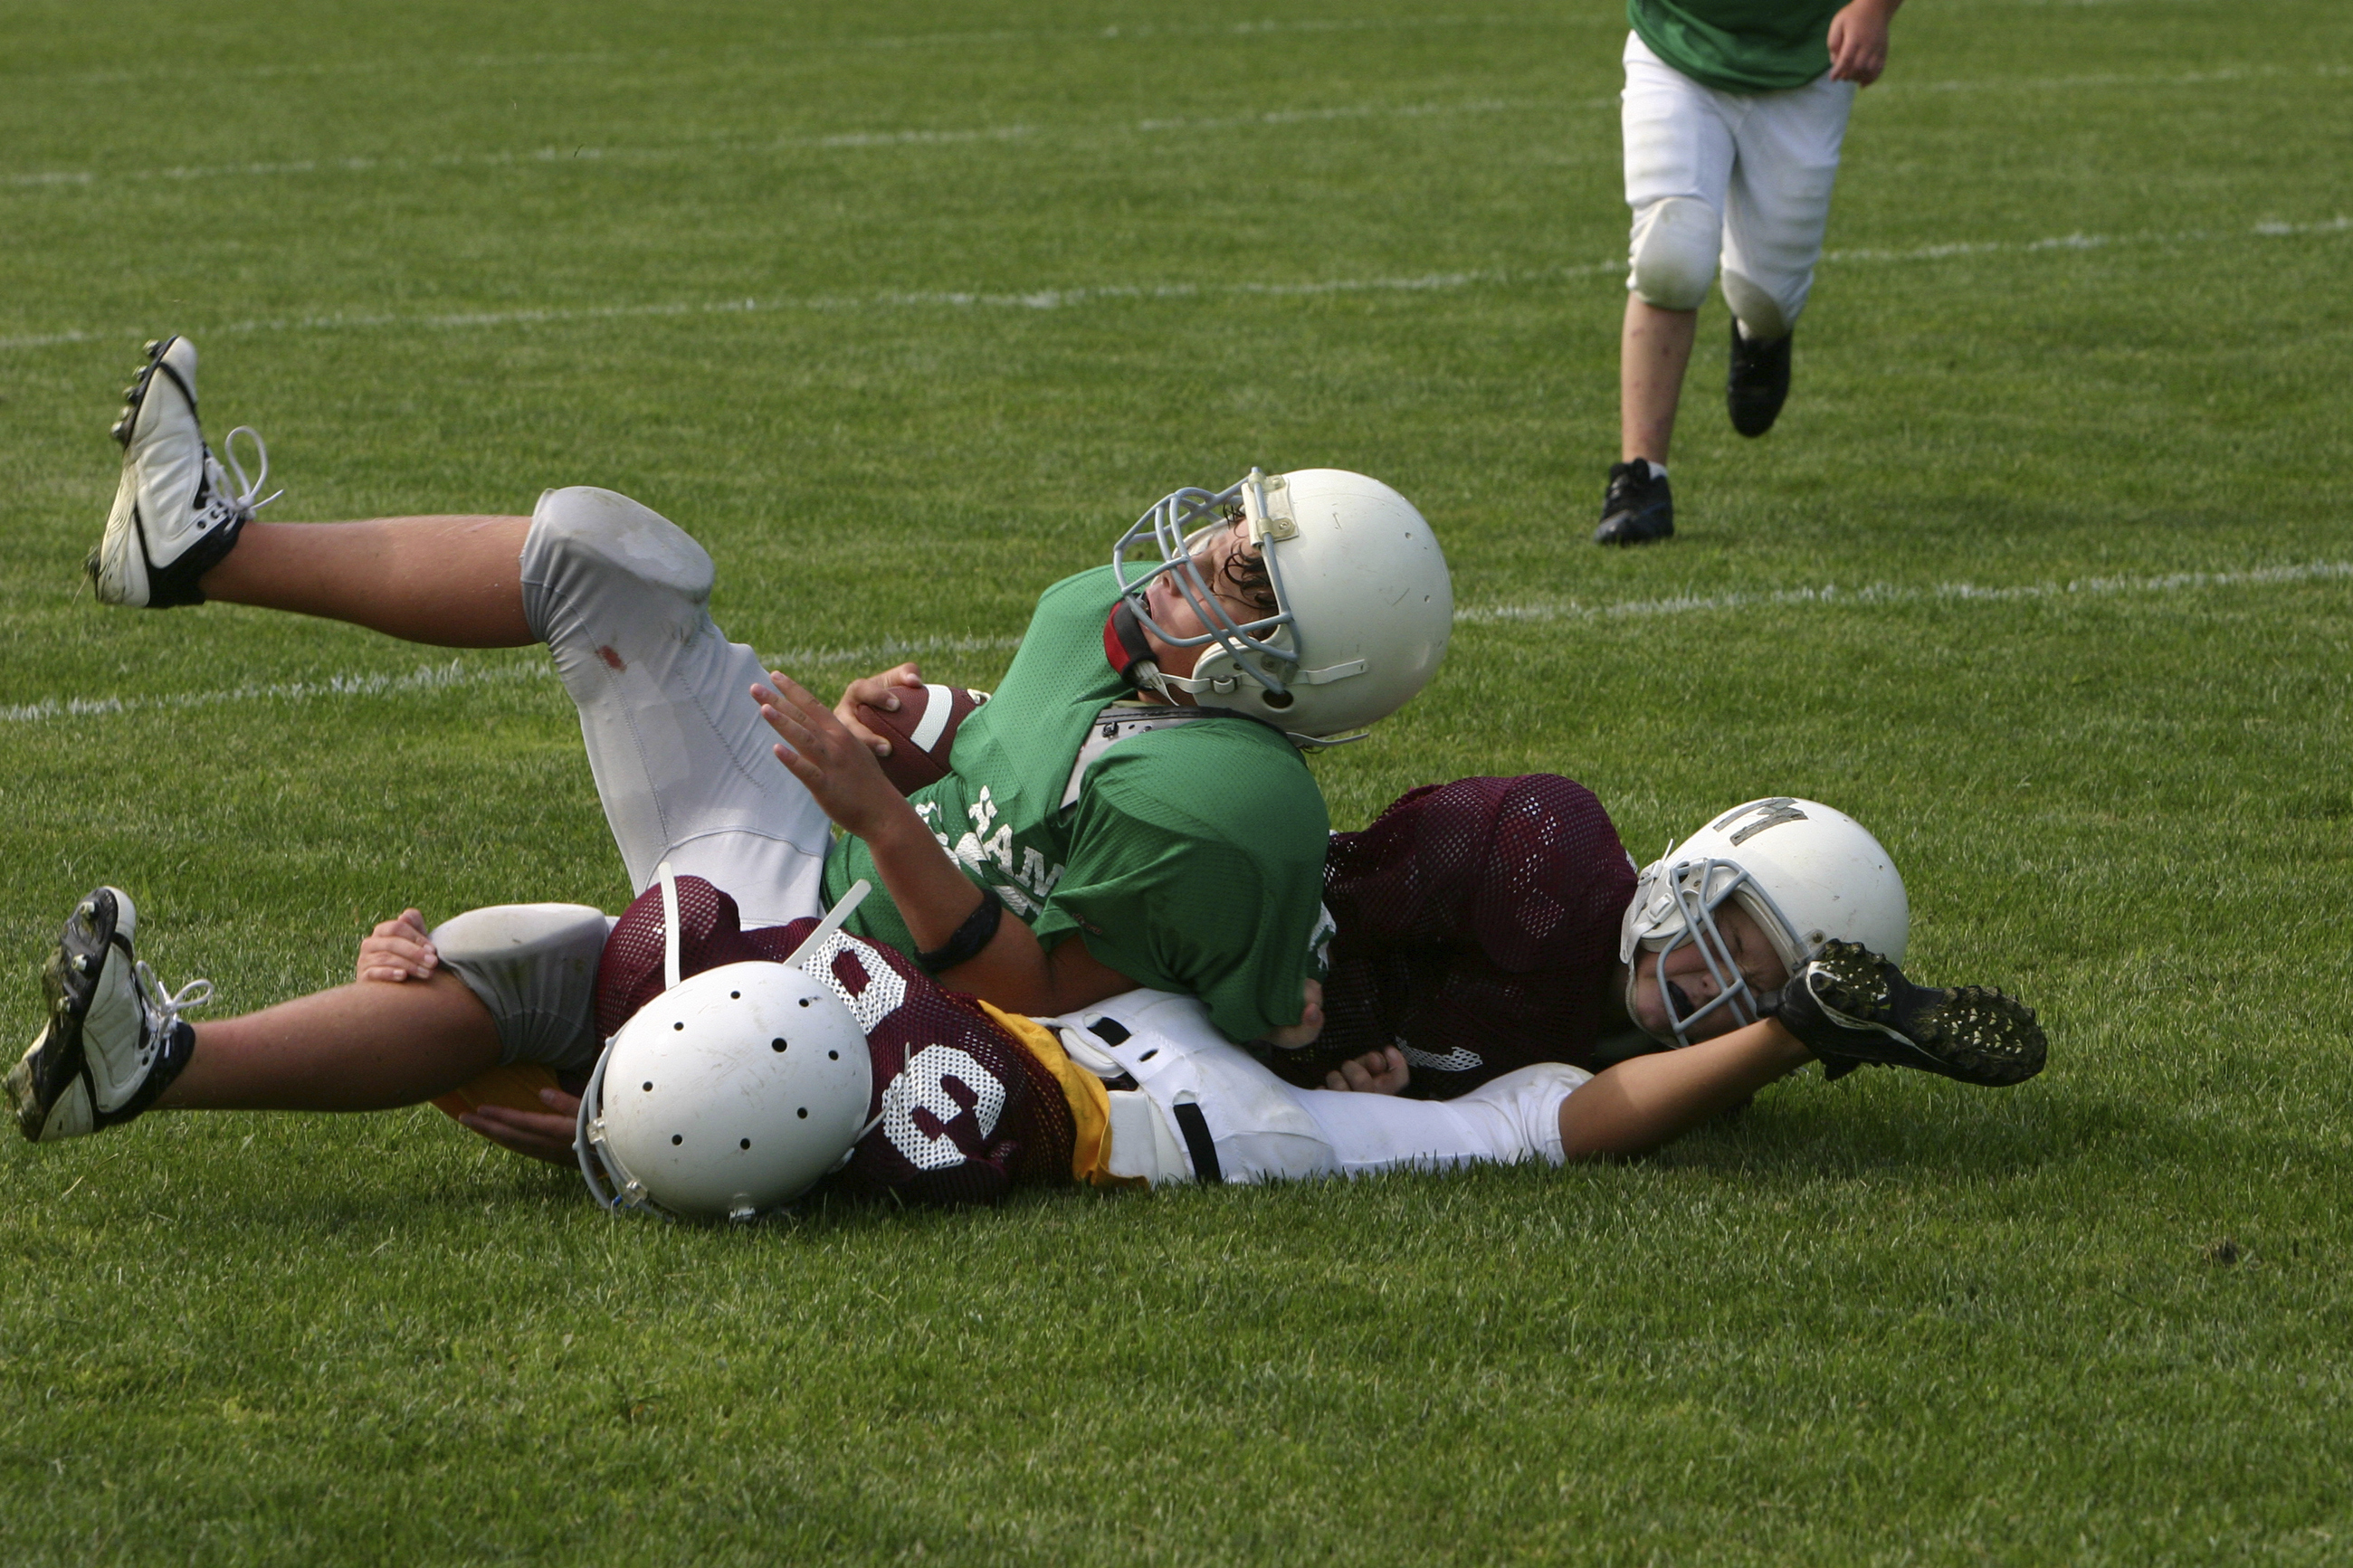 A history and effects of concussions in football and hockey